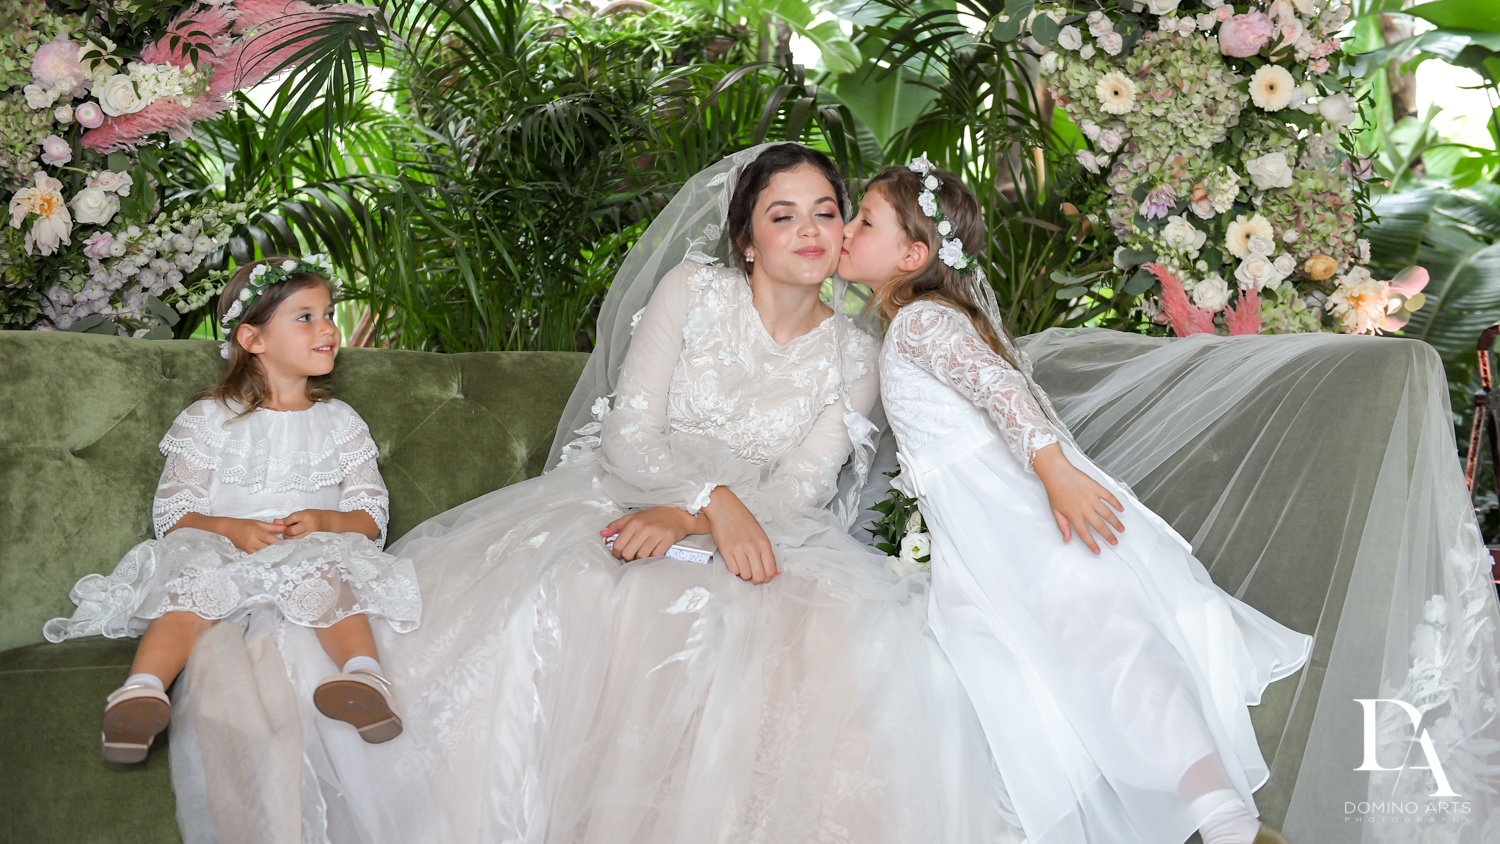 flower girl at Jewish Orthodox Wedding in Palm Beach by Domino Arts Photography